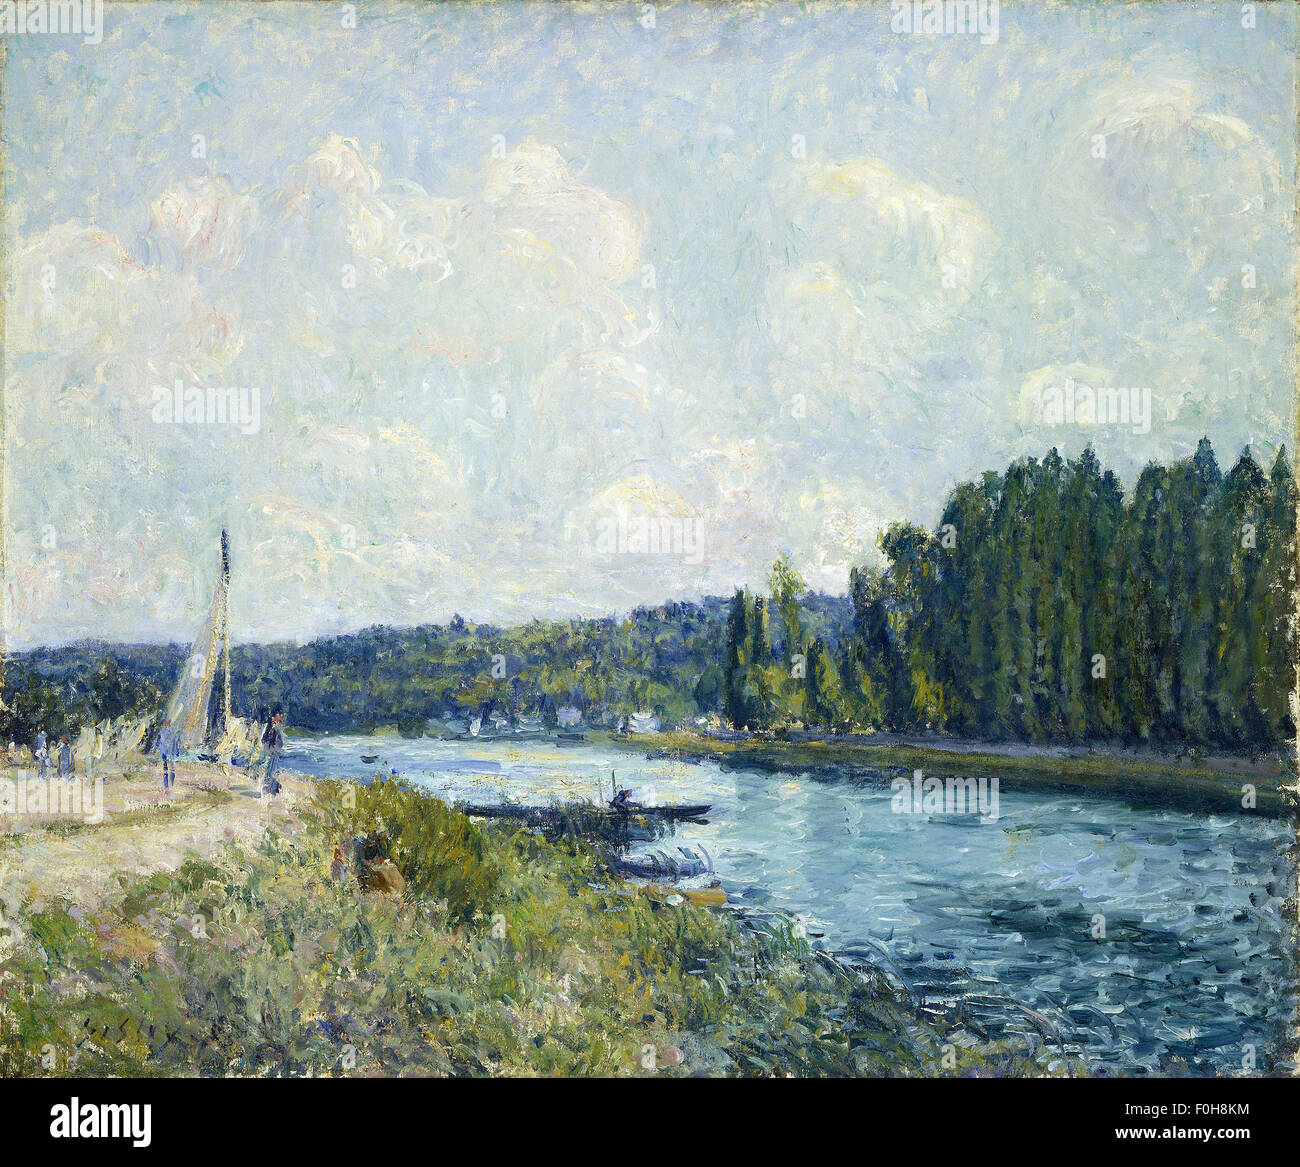 Alfred Sisley - The Banks of the Oise - Stock Image